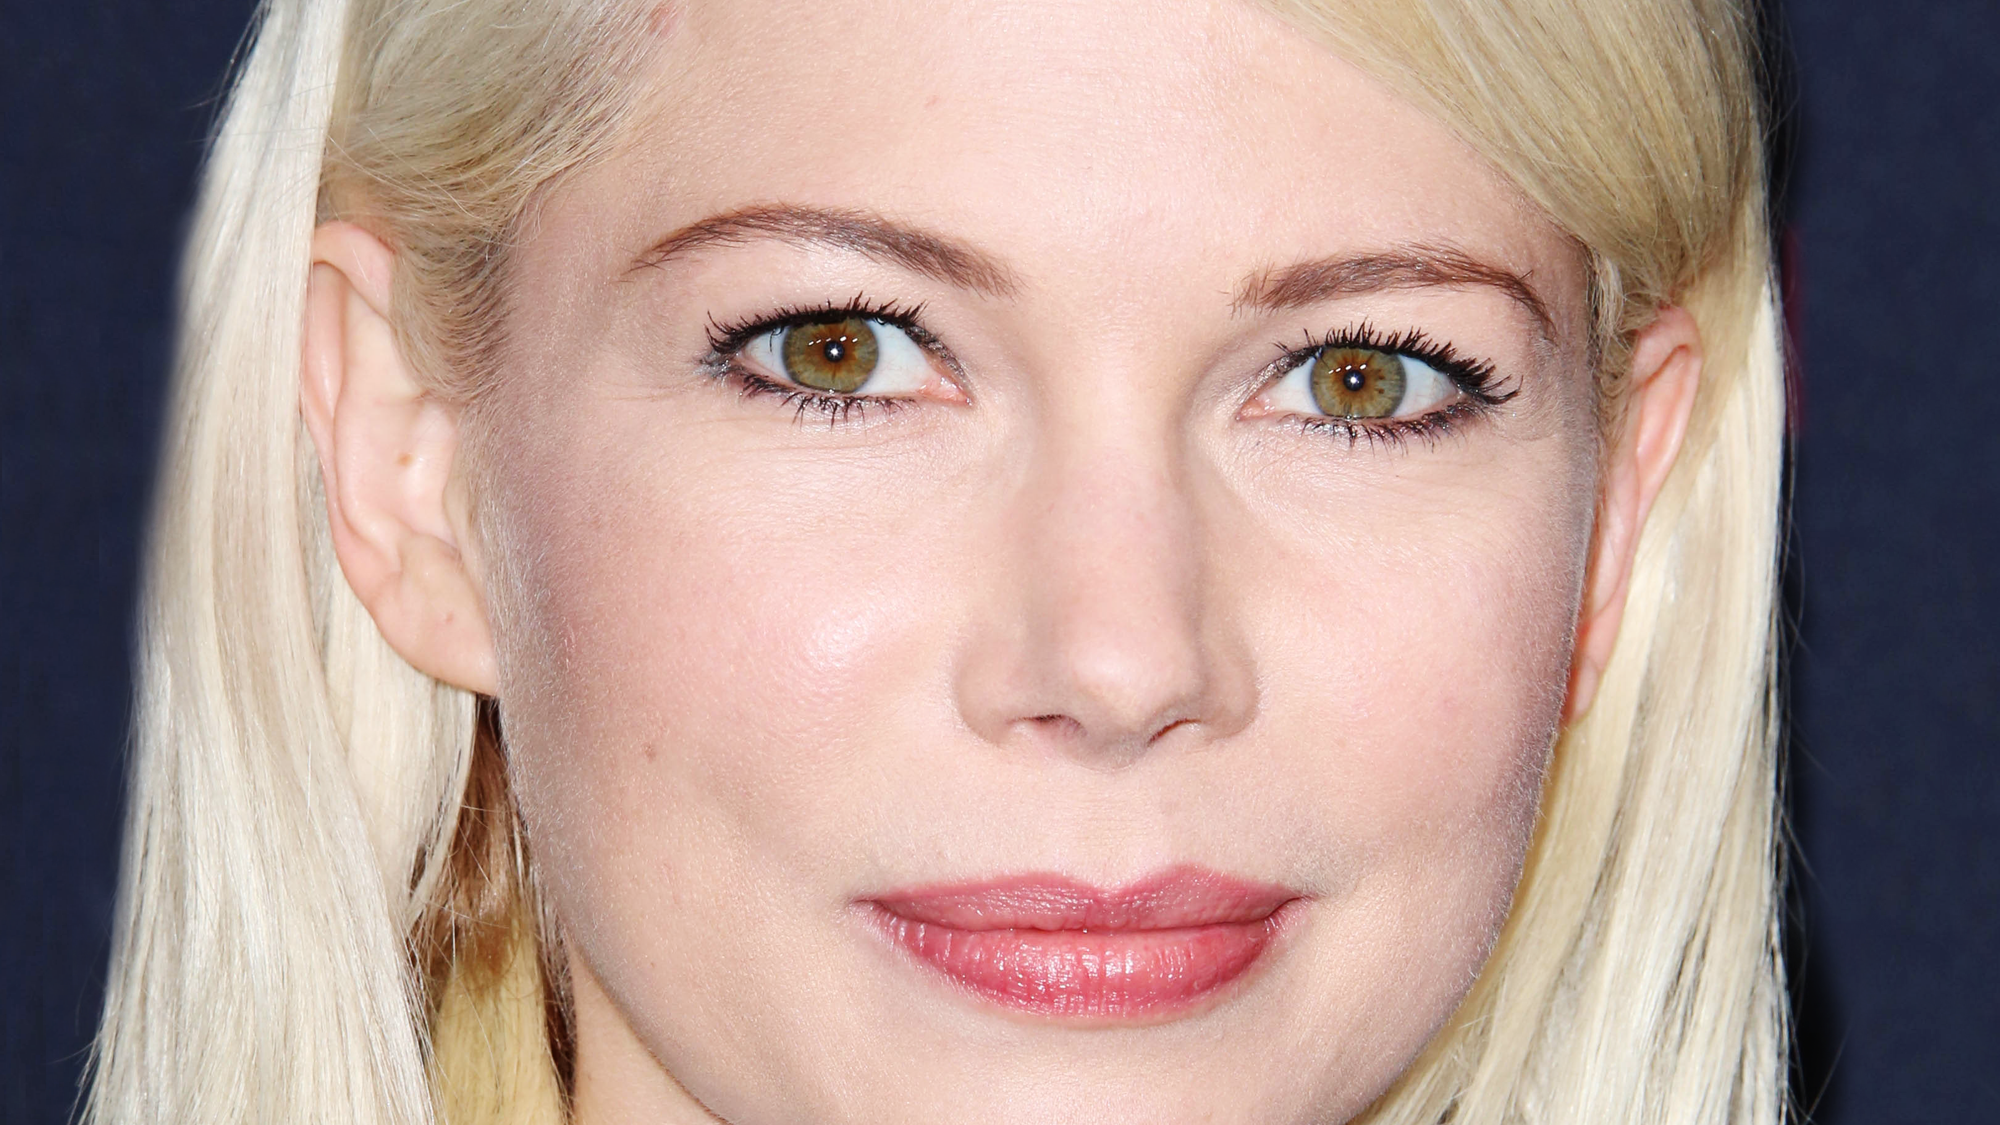 Makeup tips for blondes with green eyes